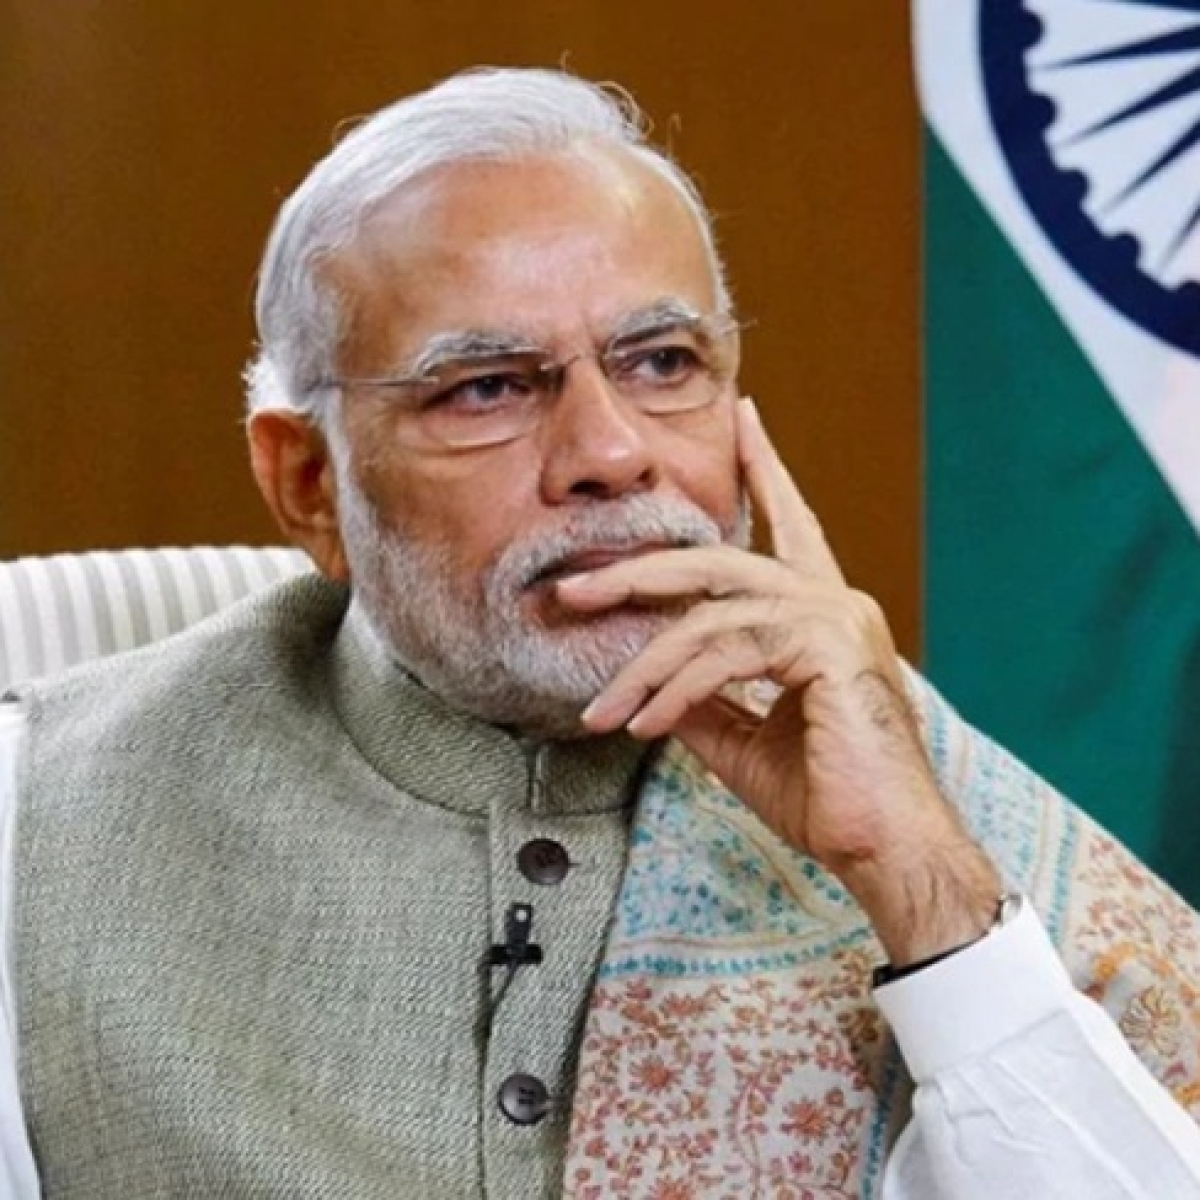 'Wake Up to address real issues': Twitter slams Modi govt over GDP growth